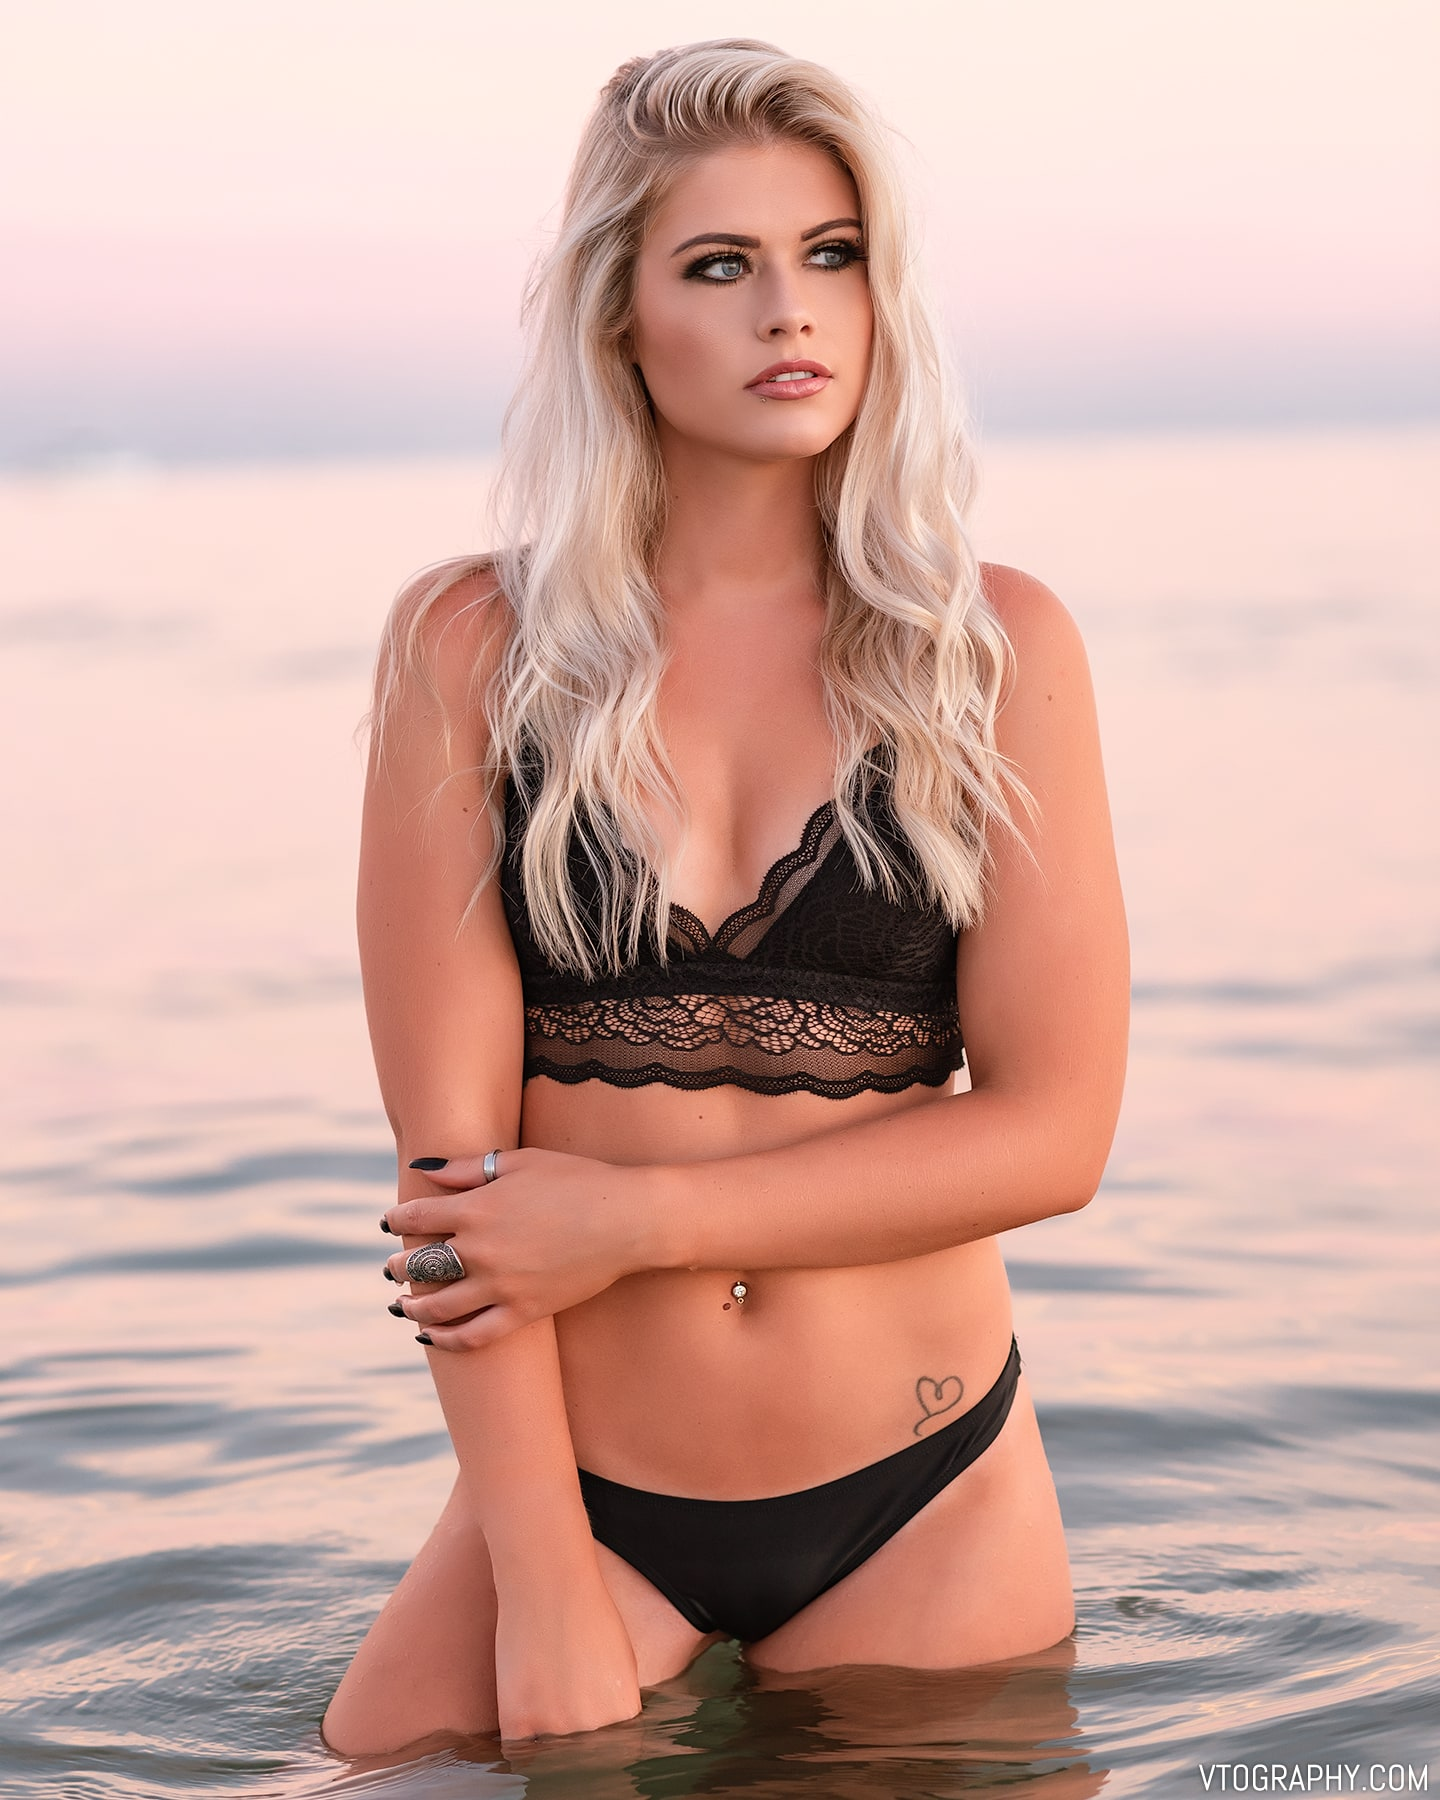 Sami in a bikini at sunset